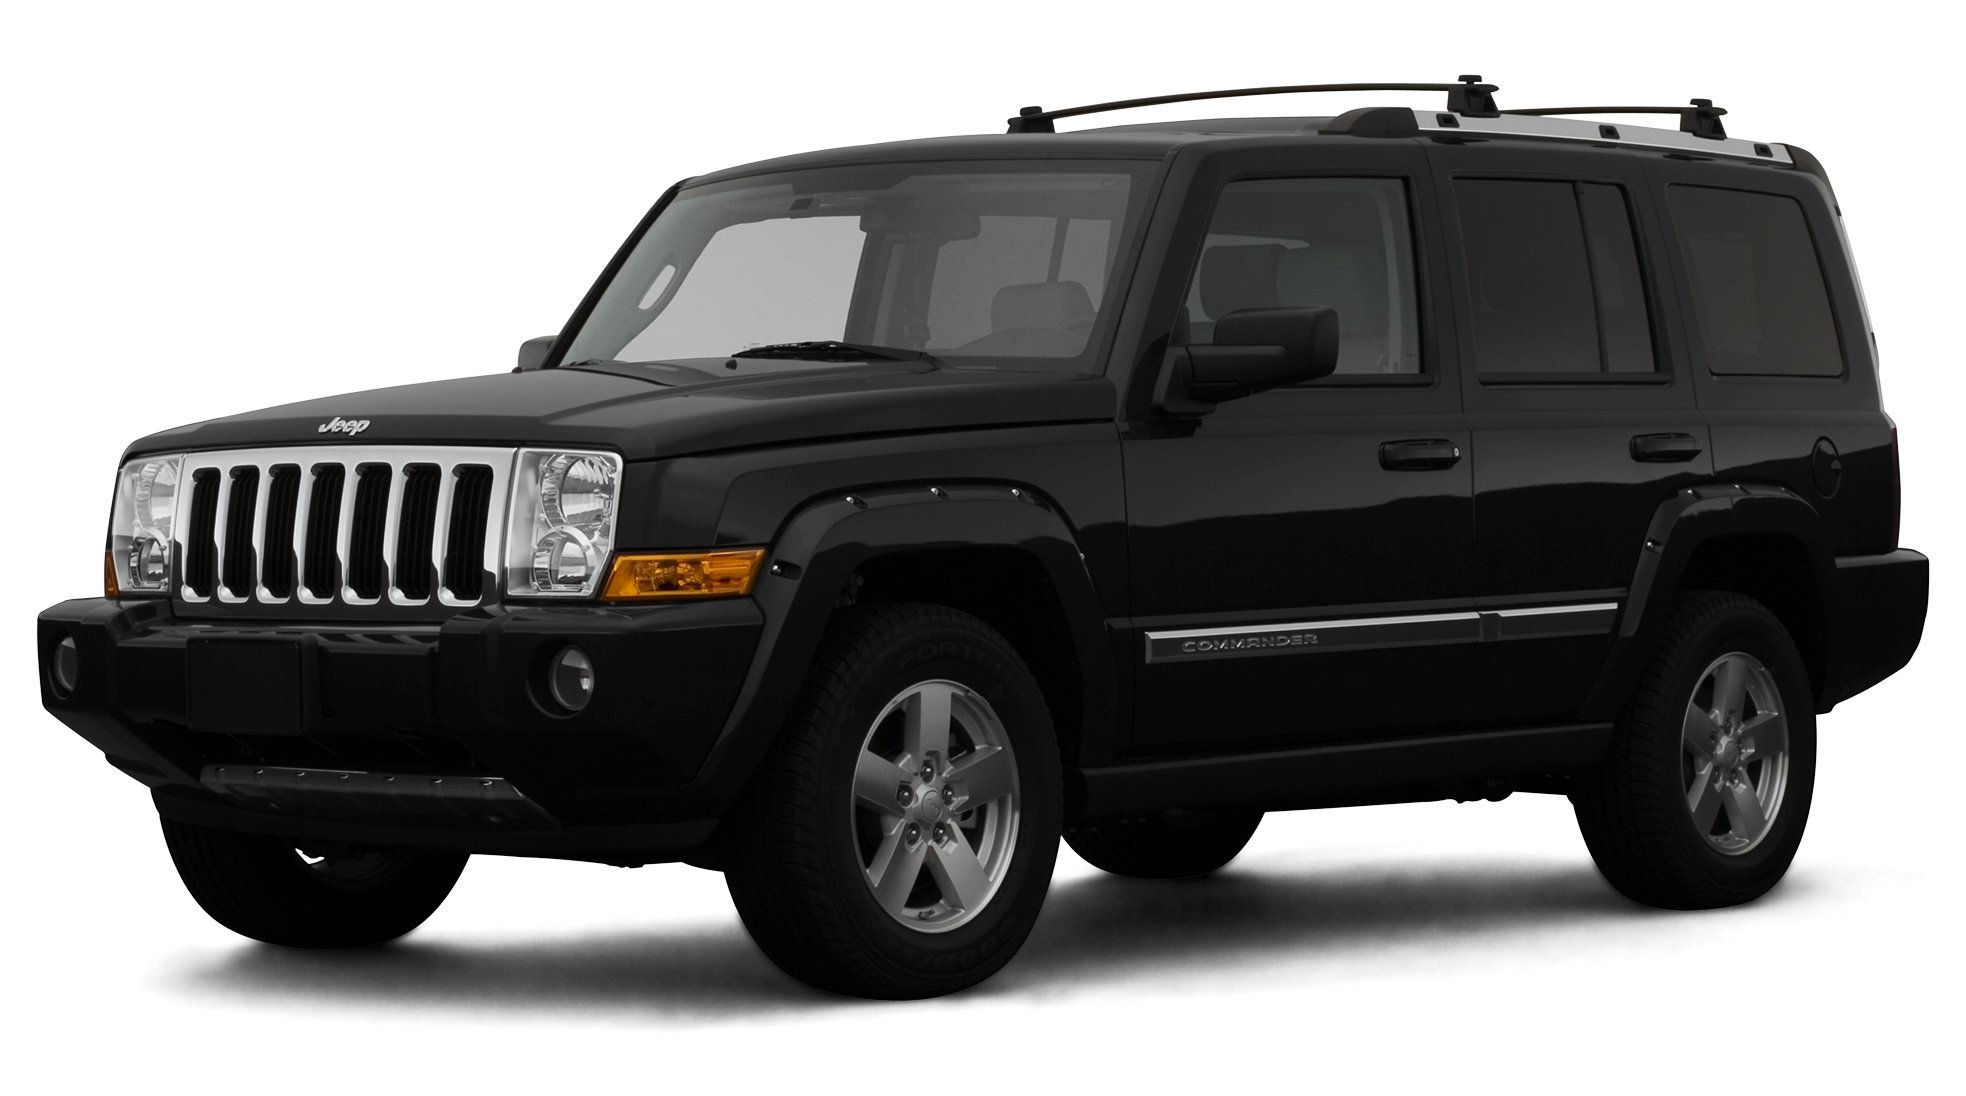 2007 jeep commander reviews images and specs vehicles. Black Bedroom Furniture Sets. Home Design Ideas